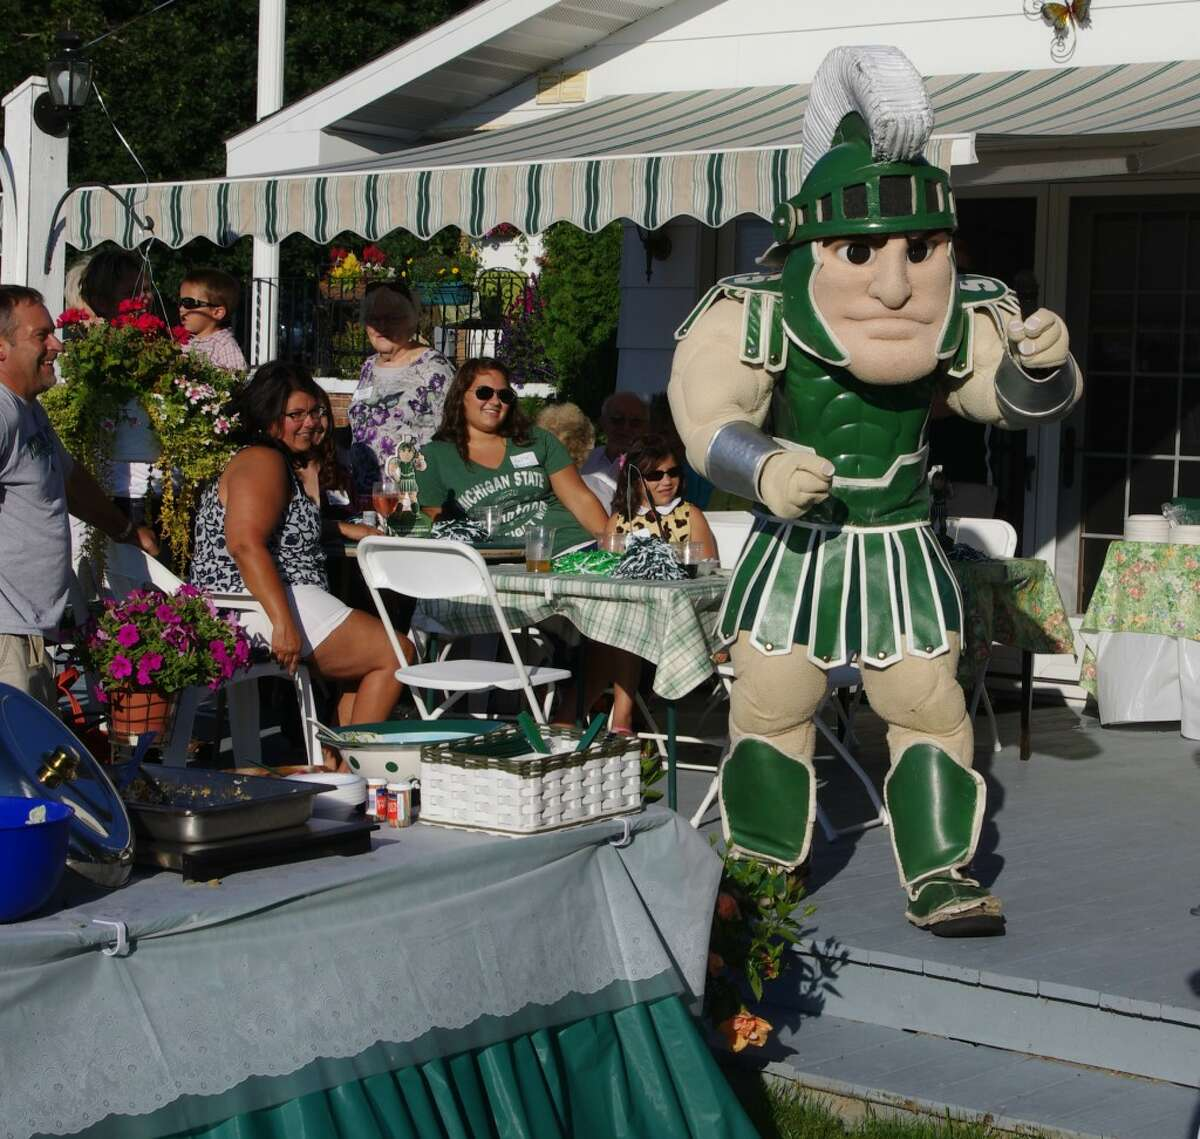 The Michigan State University mascot Sparty was the guest of honor at the 13th annual Michigan State University Alumni Club of Manistee barbecue held at the Lutz Farm near Kaleva on Wednesday evening. (Dave Yarnell/News Advocate)